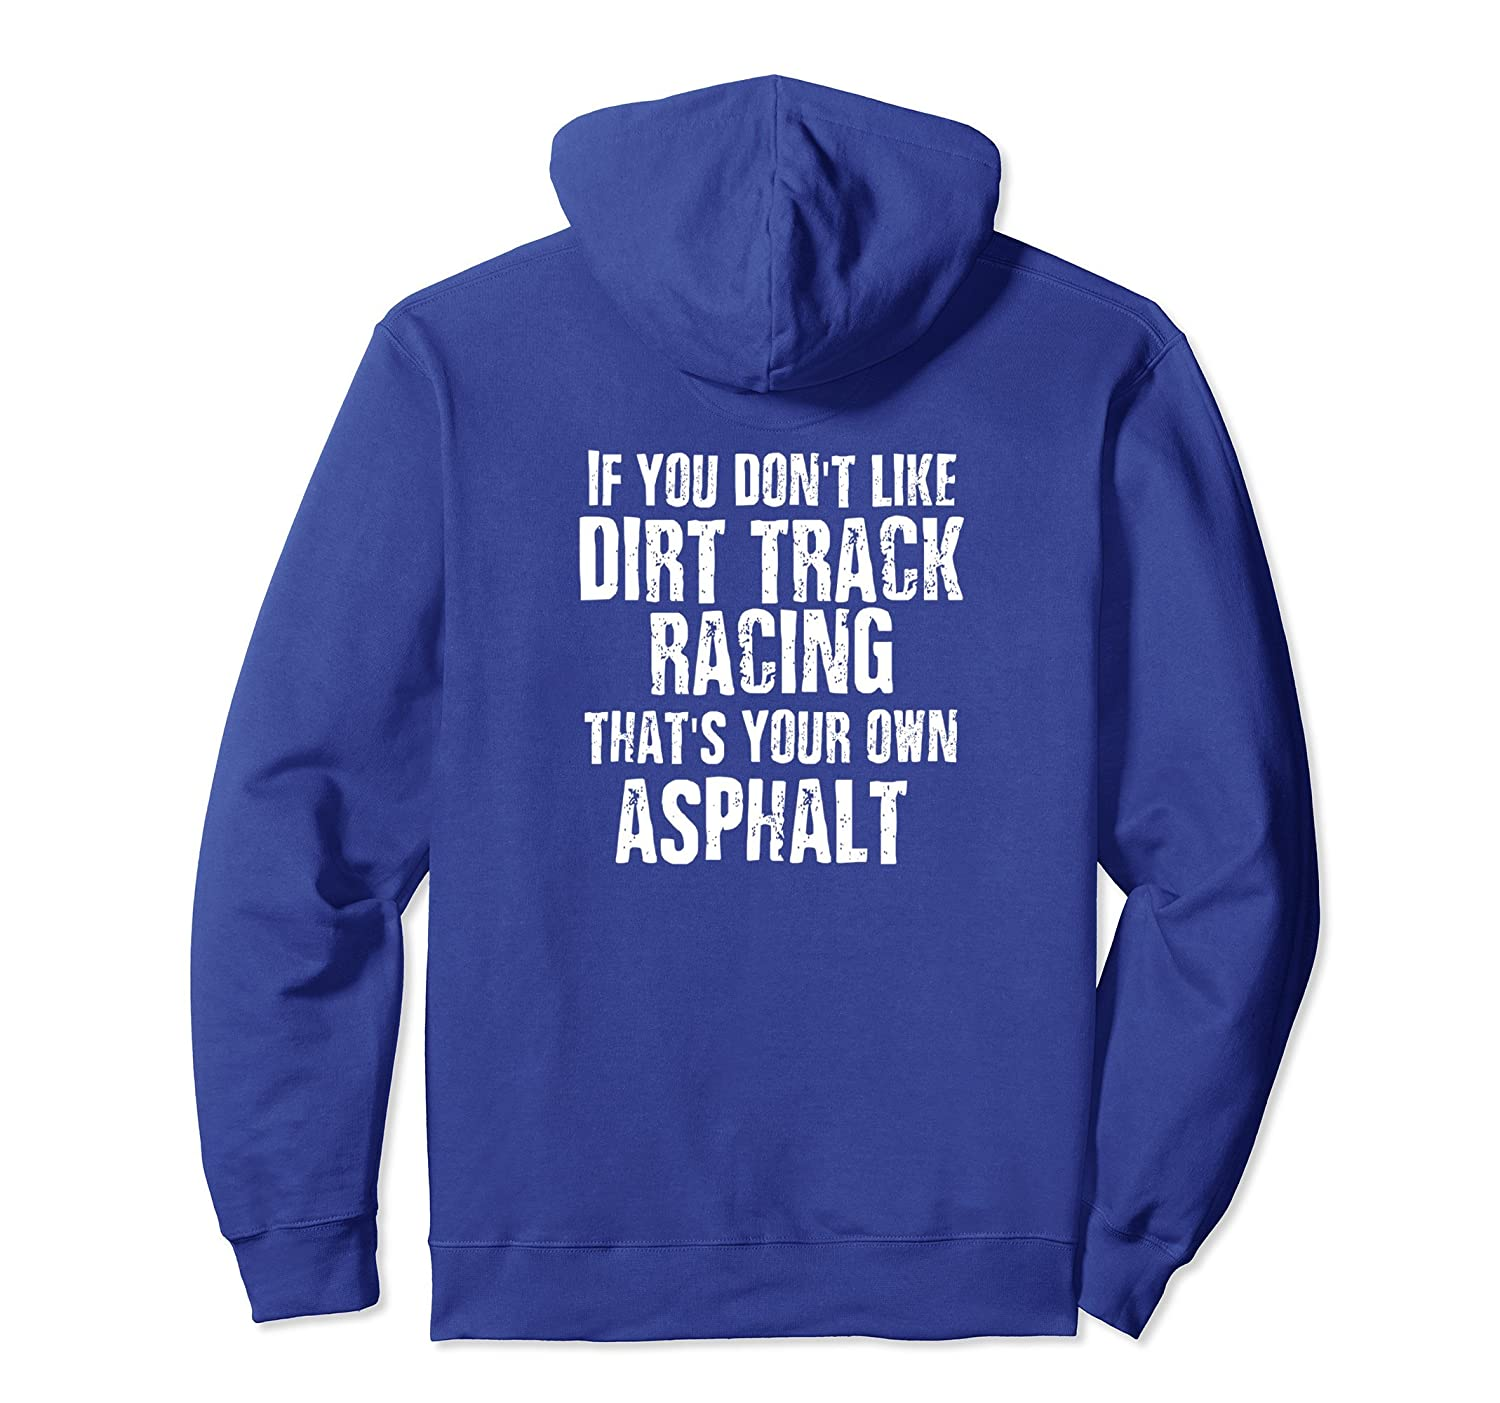 Dirt Track Racing Hoodie Funny Racing Quote Dirt Car Shirt Ah My Shirt One Gift